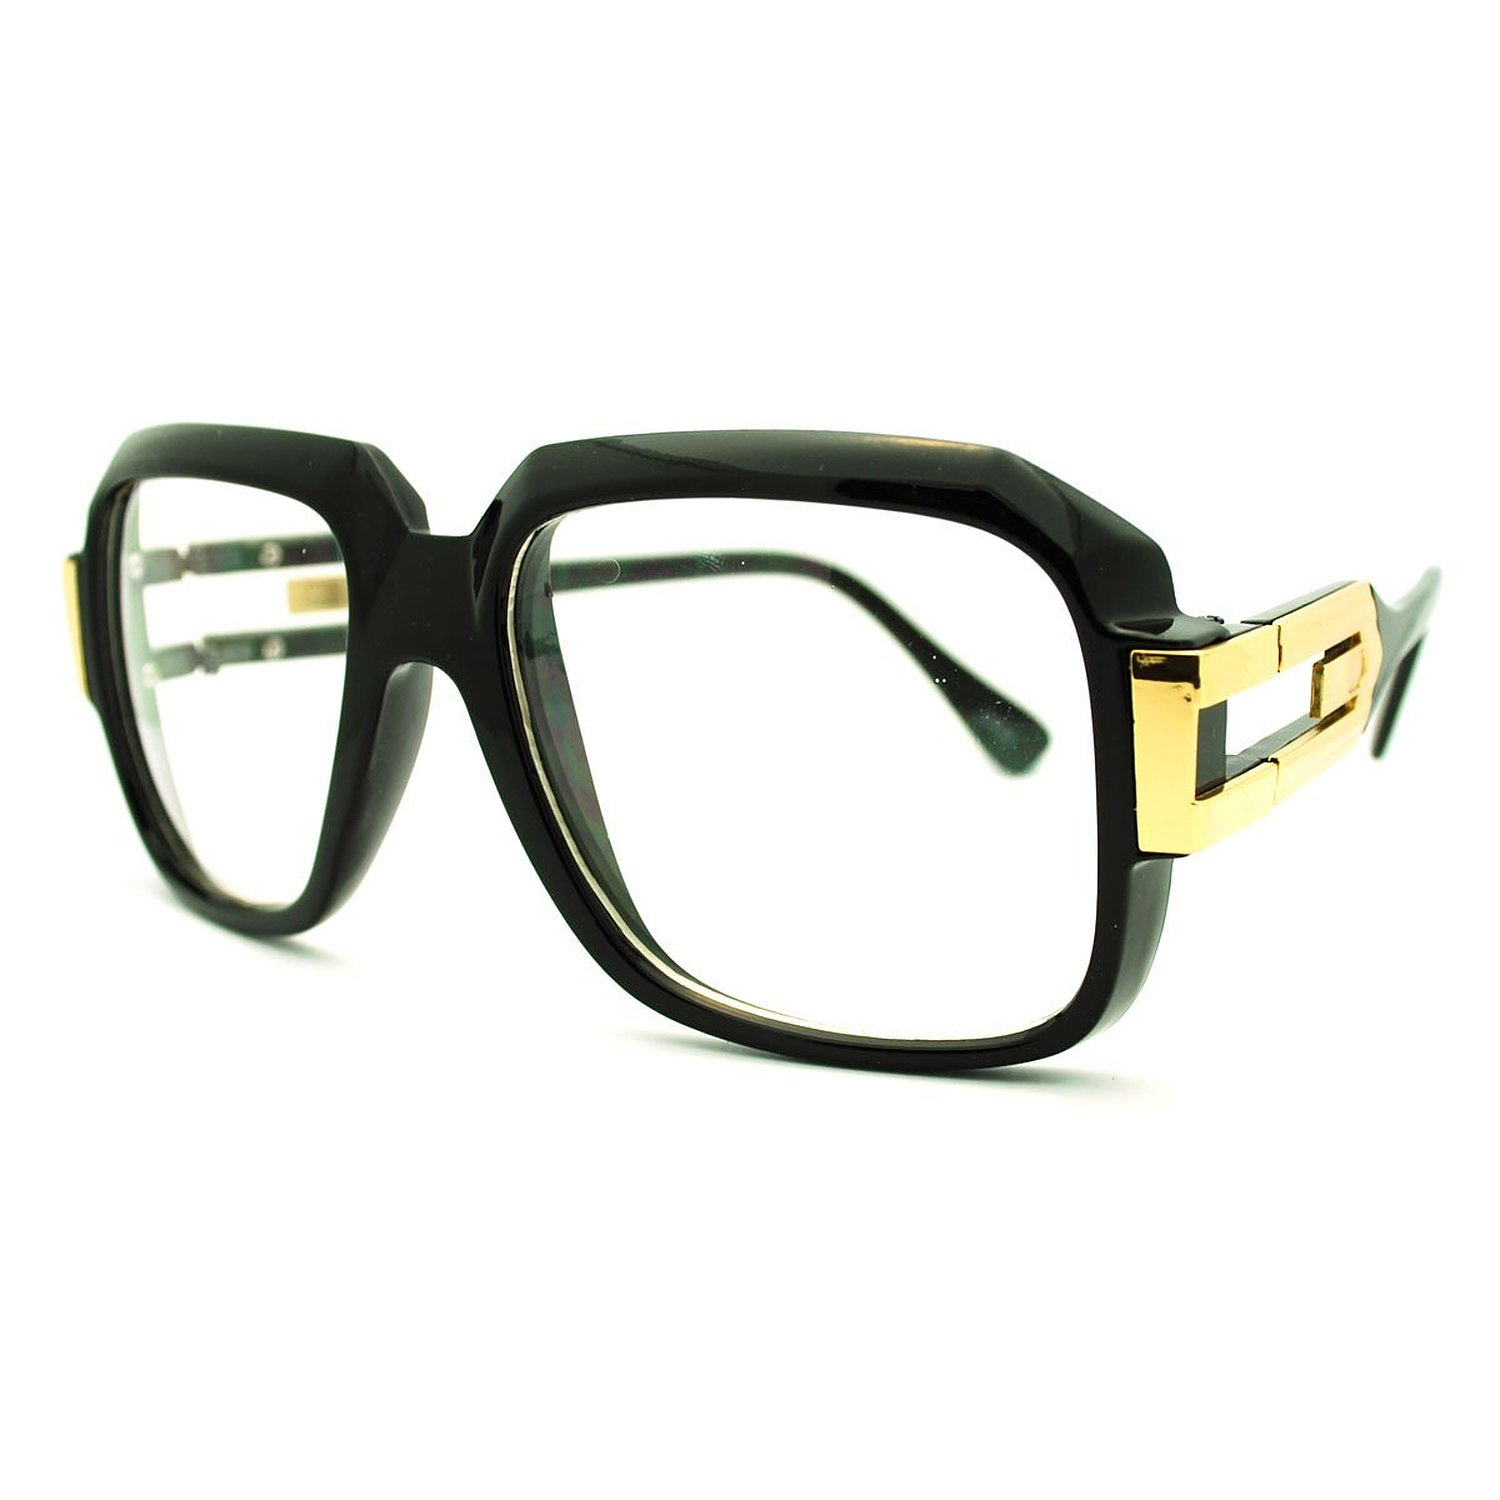 Run DMC Style Oversized Rectangular Hip Hop Glasses with Metal Horn Rim